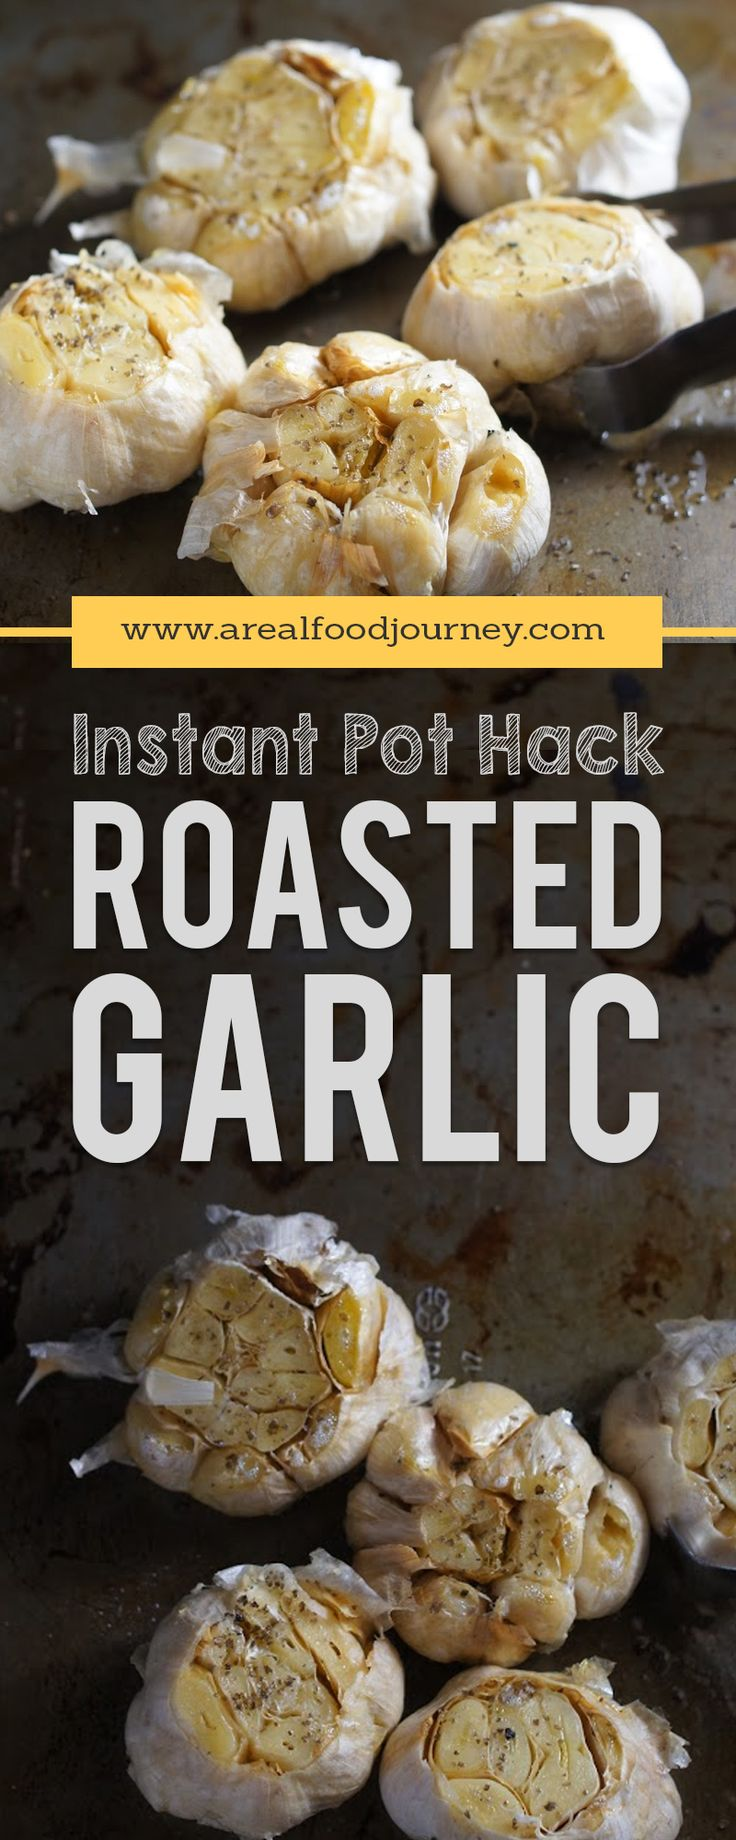 Crazy simple roasted garlic in your instant pot. Get the roasted flavor in a fraction of the time. Instructions for roasted garlic in your instant pot! (Whole Chicken In The Crockpot)